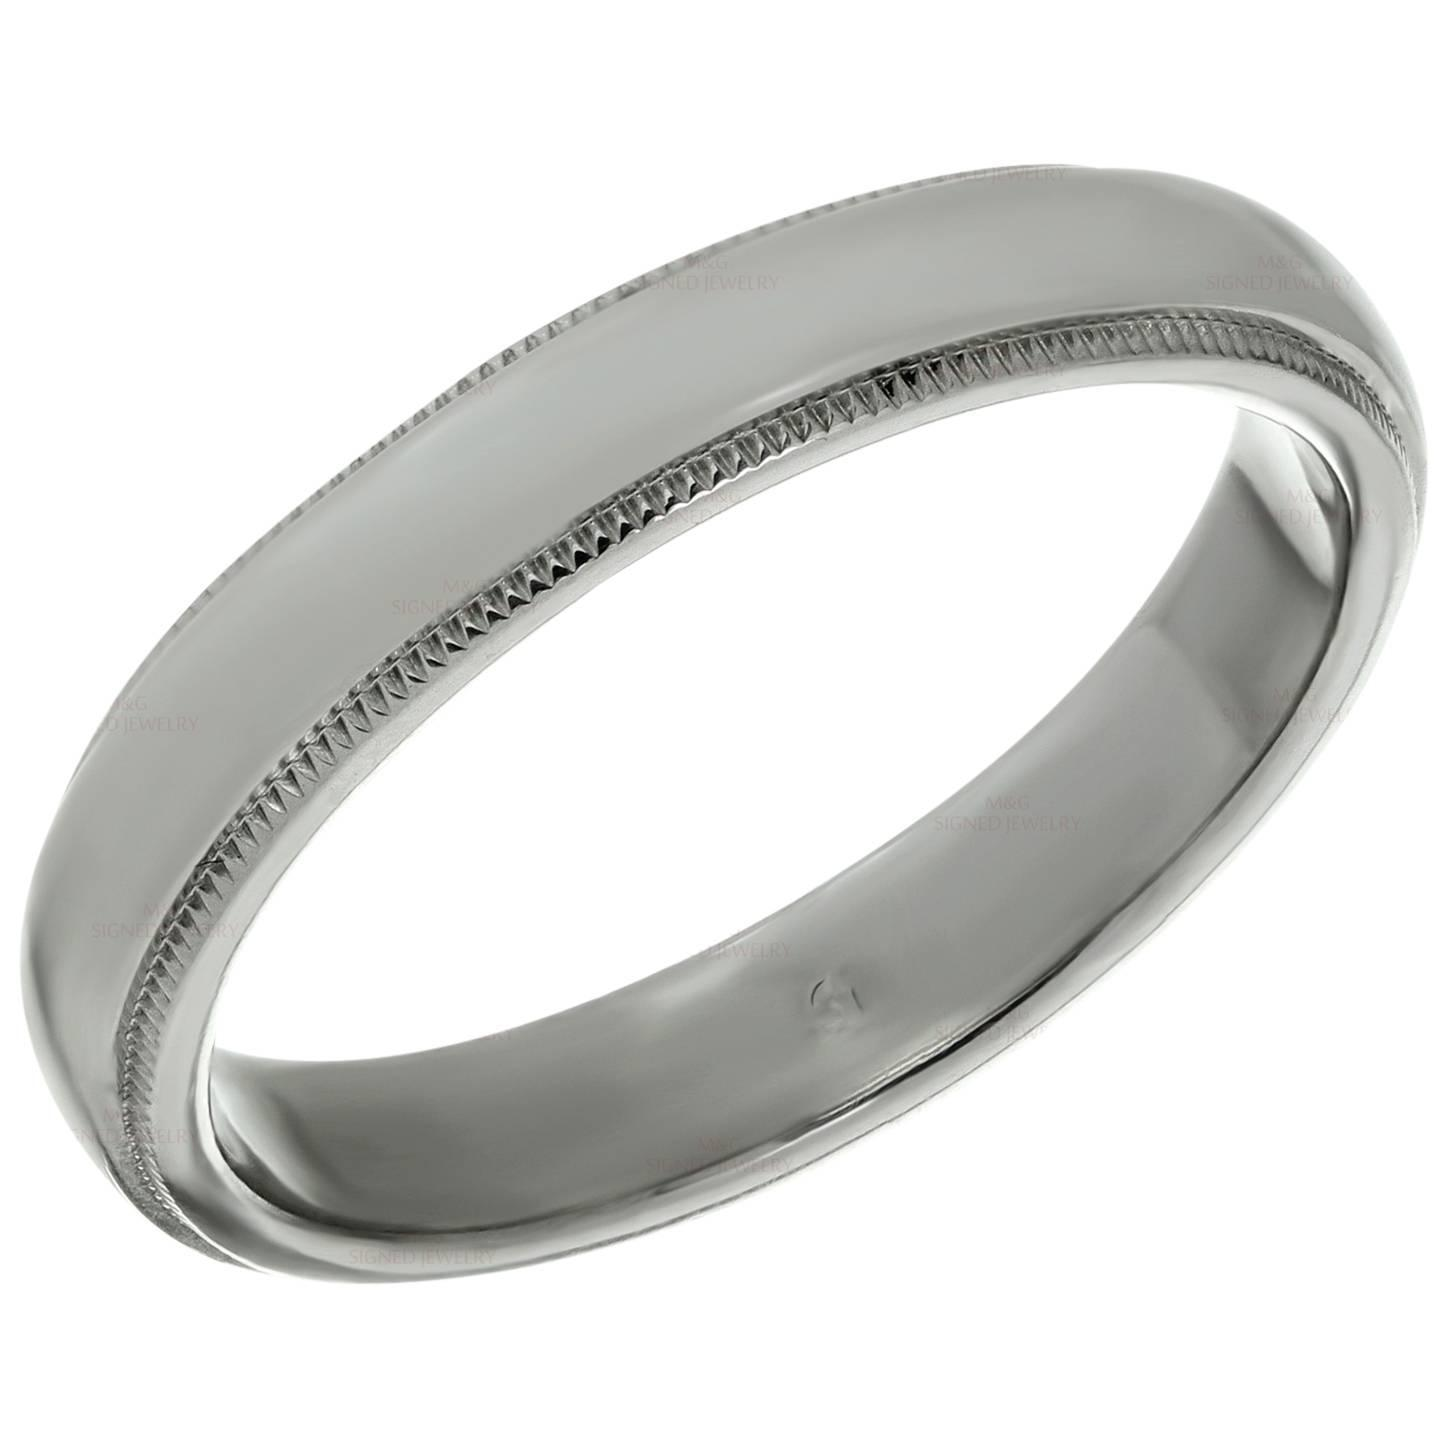 finish for cocoandchia ring black wedding men rings sterling wide img oxidized band mm rough product